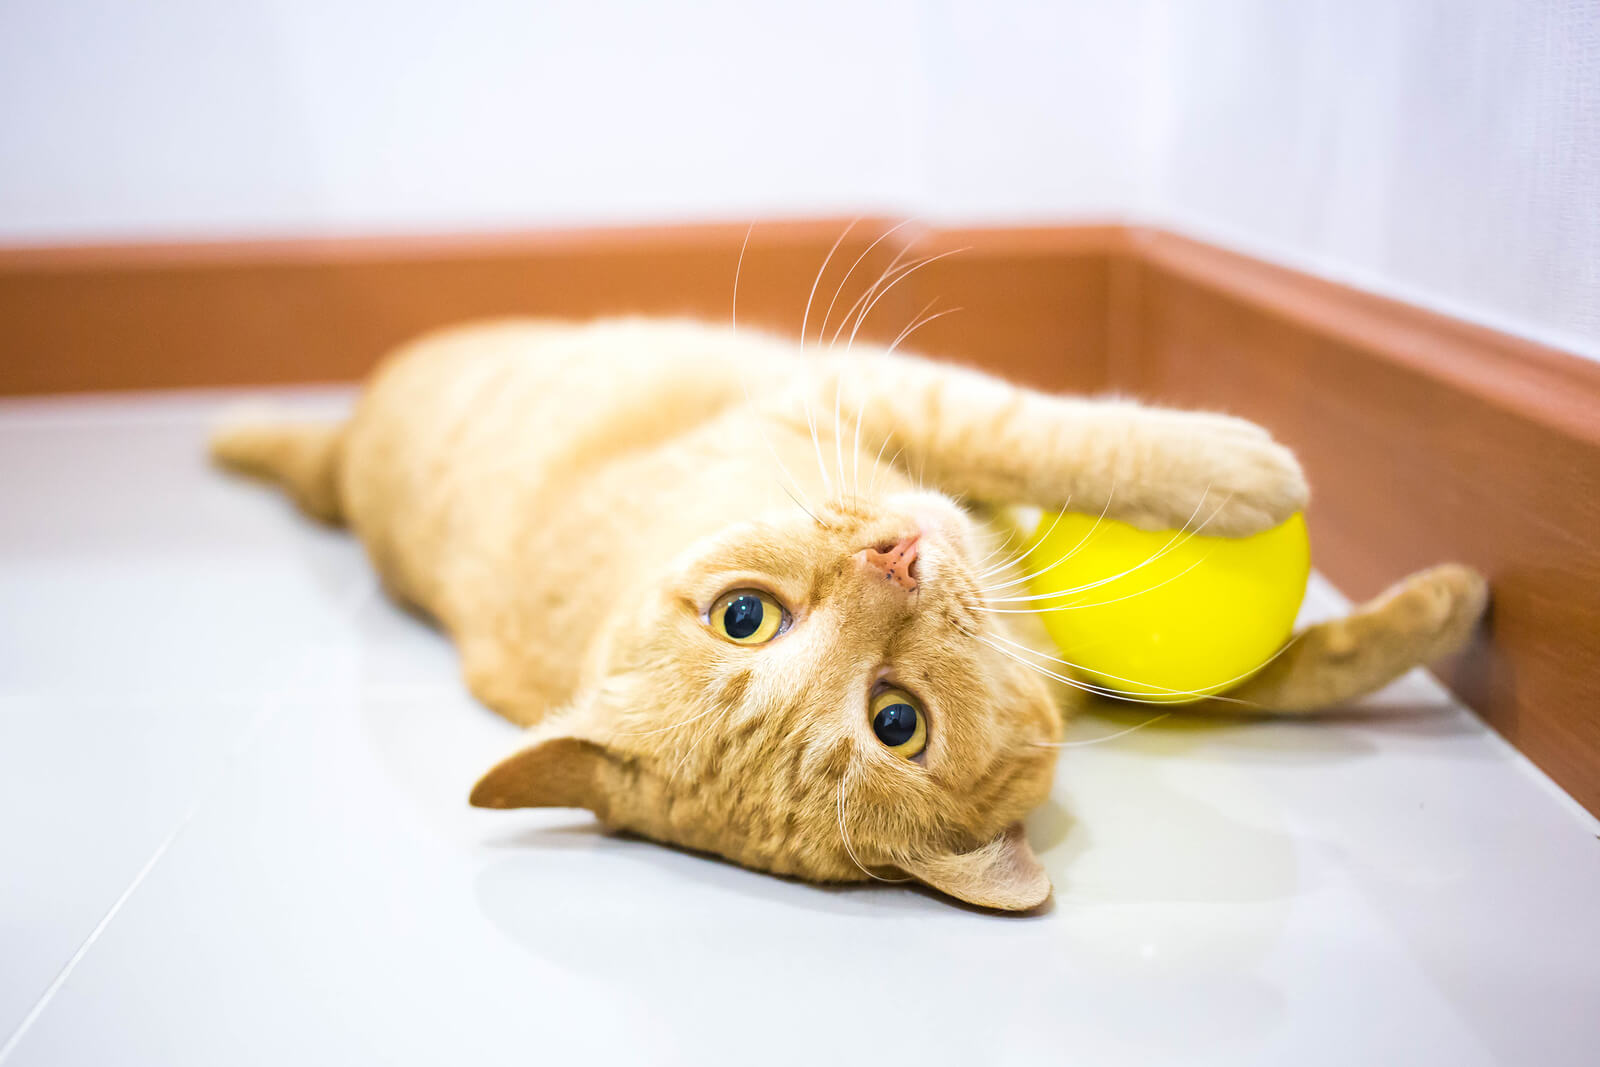 橘色虎斑幼貓躺在地板上玩黃色的球Orange tabby kitten lying down playing with yellow ball on floor